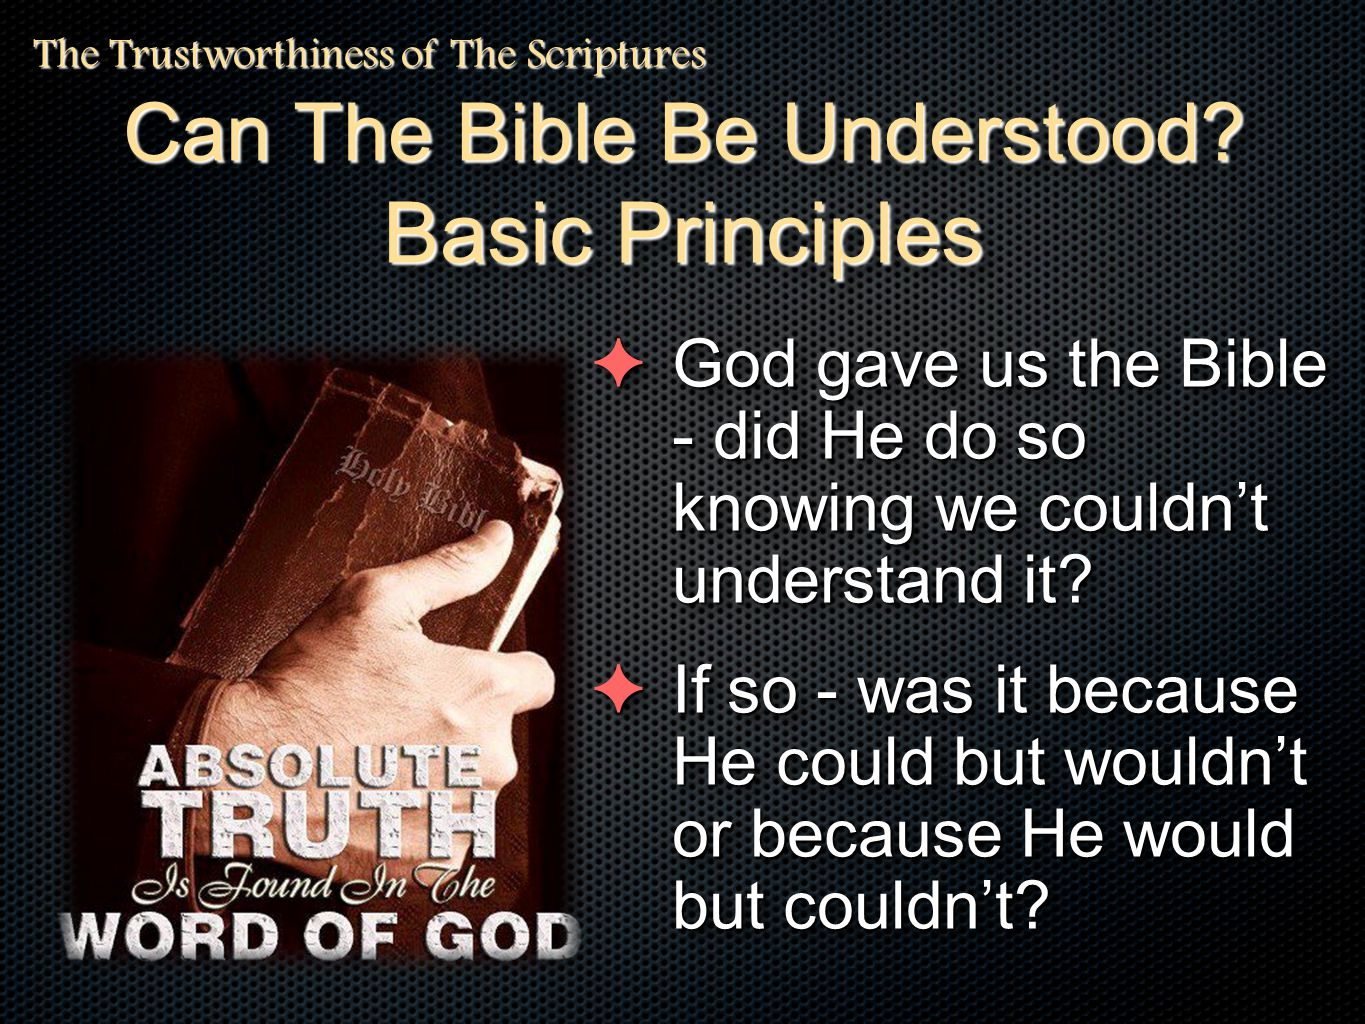 ✦ The word is truth - John 17:17 ✦ Truth does not contradict itself - therefore if we understand the truth we will understand it alike - 1 Cor.